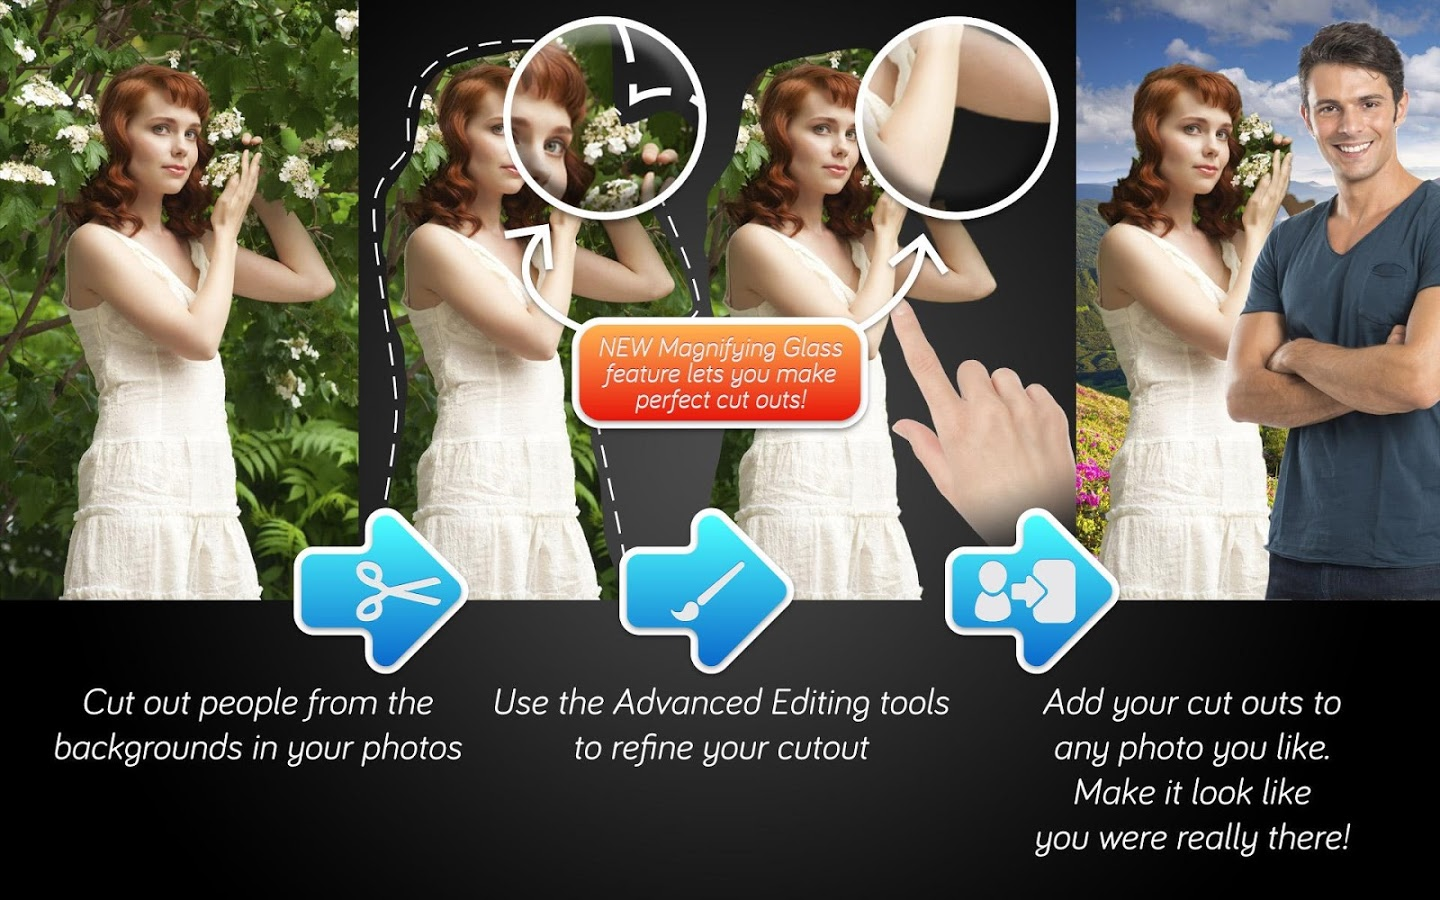 Shirt design app for android - Camera Fun Apps For Android Phones Free Top 7 Cut Paste Photo Apps For Android To